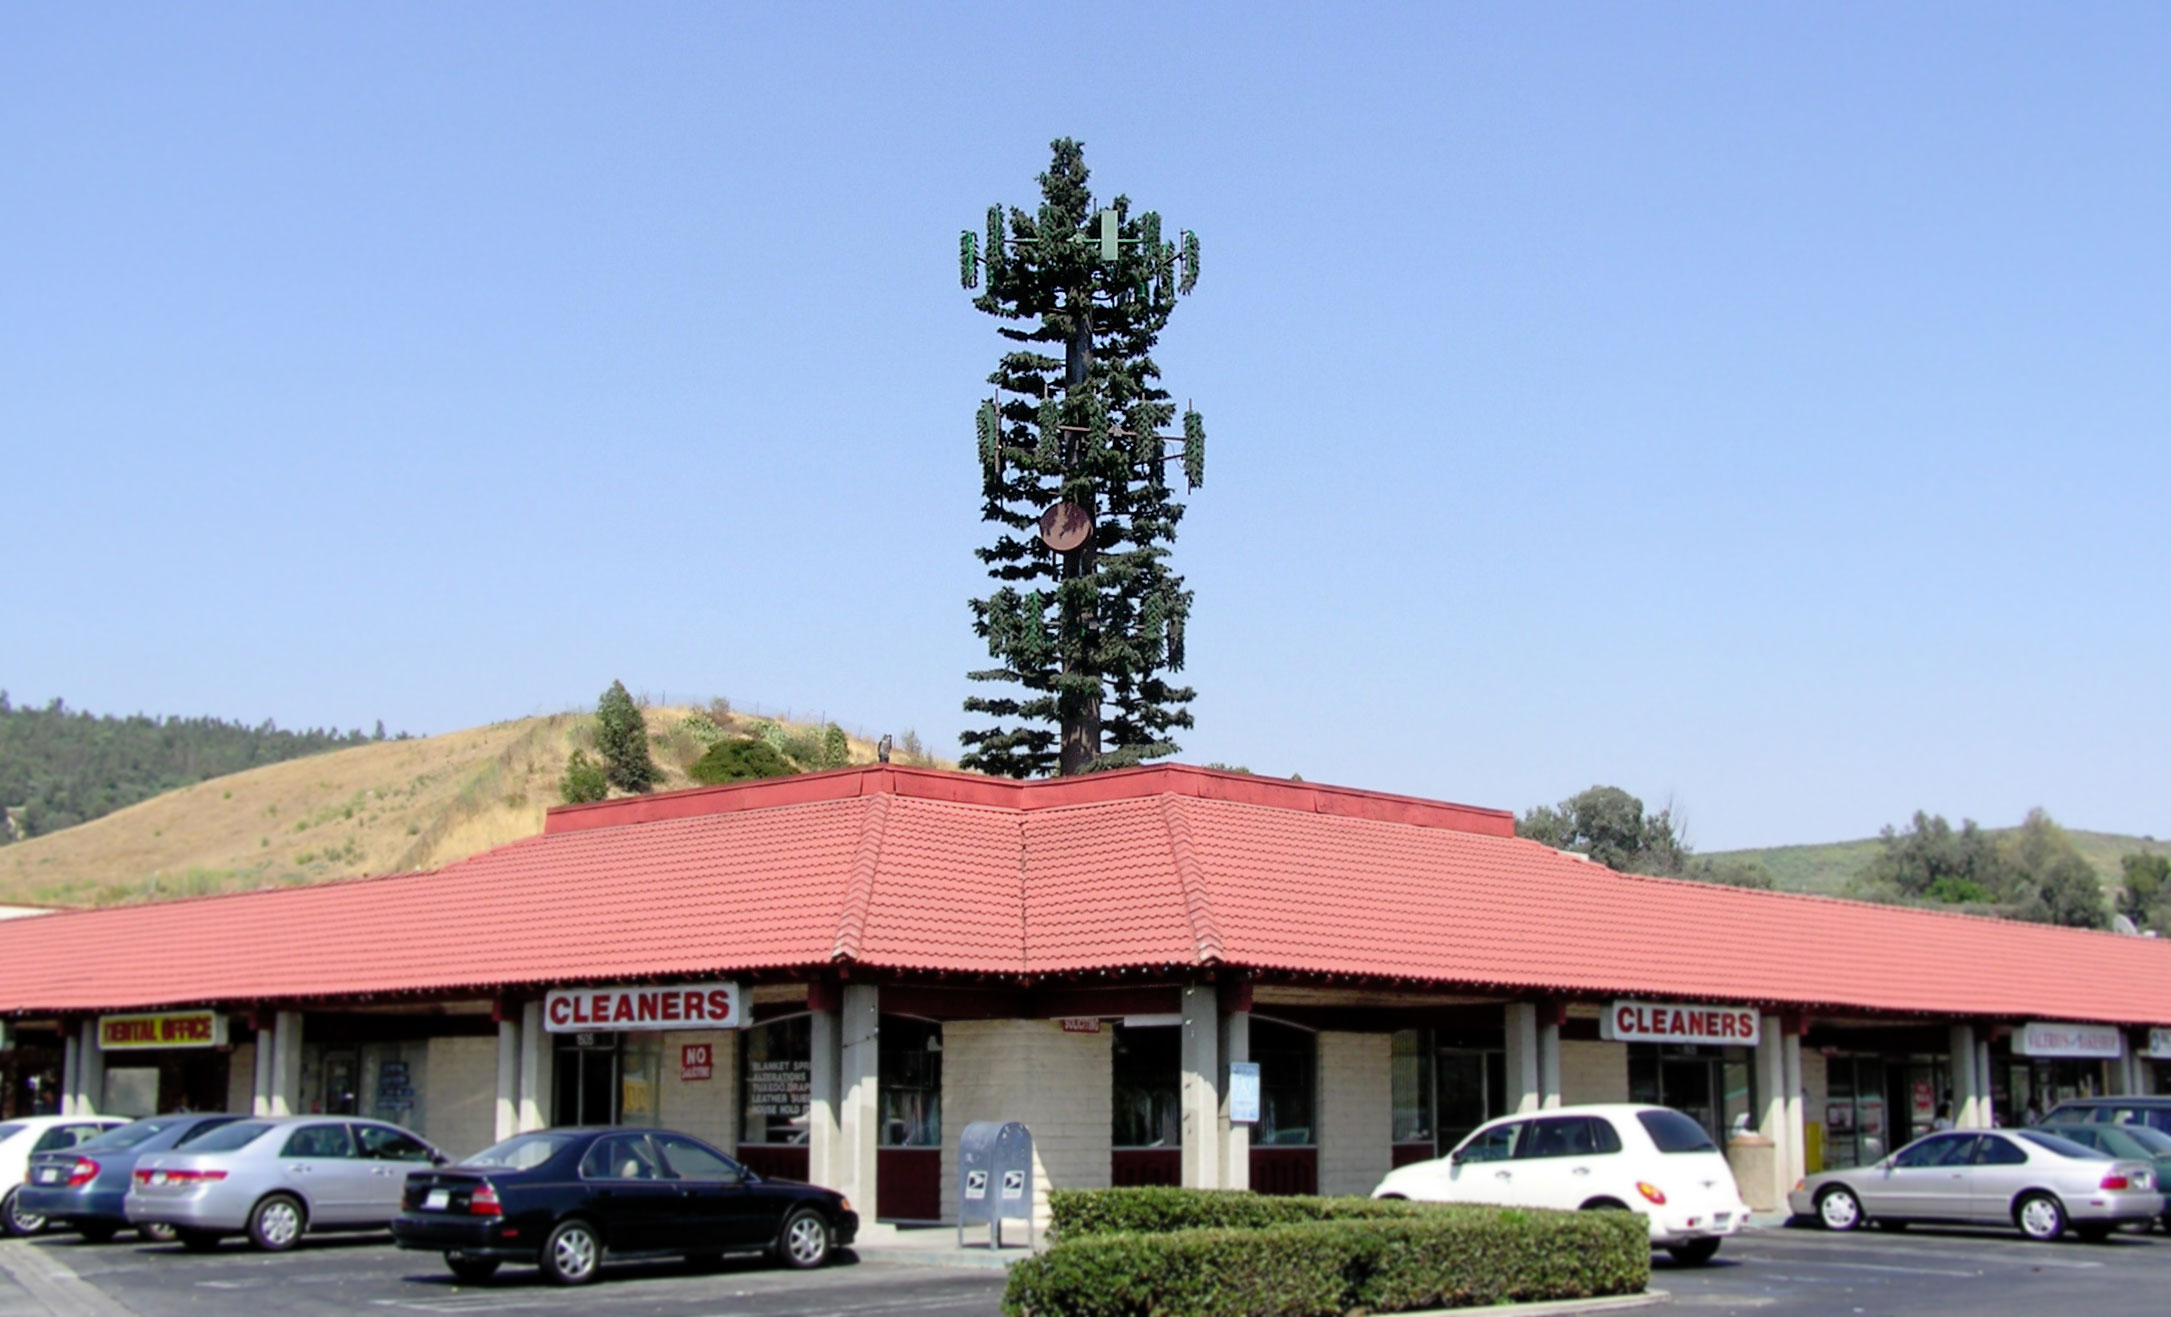 Cell Tower Shopping Center